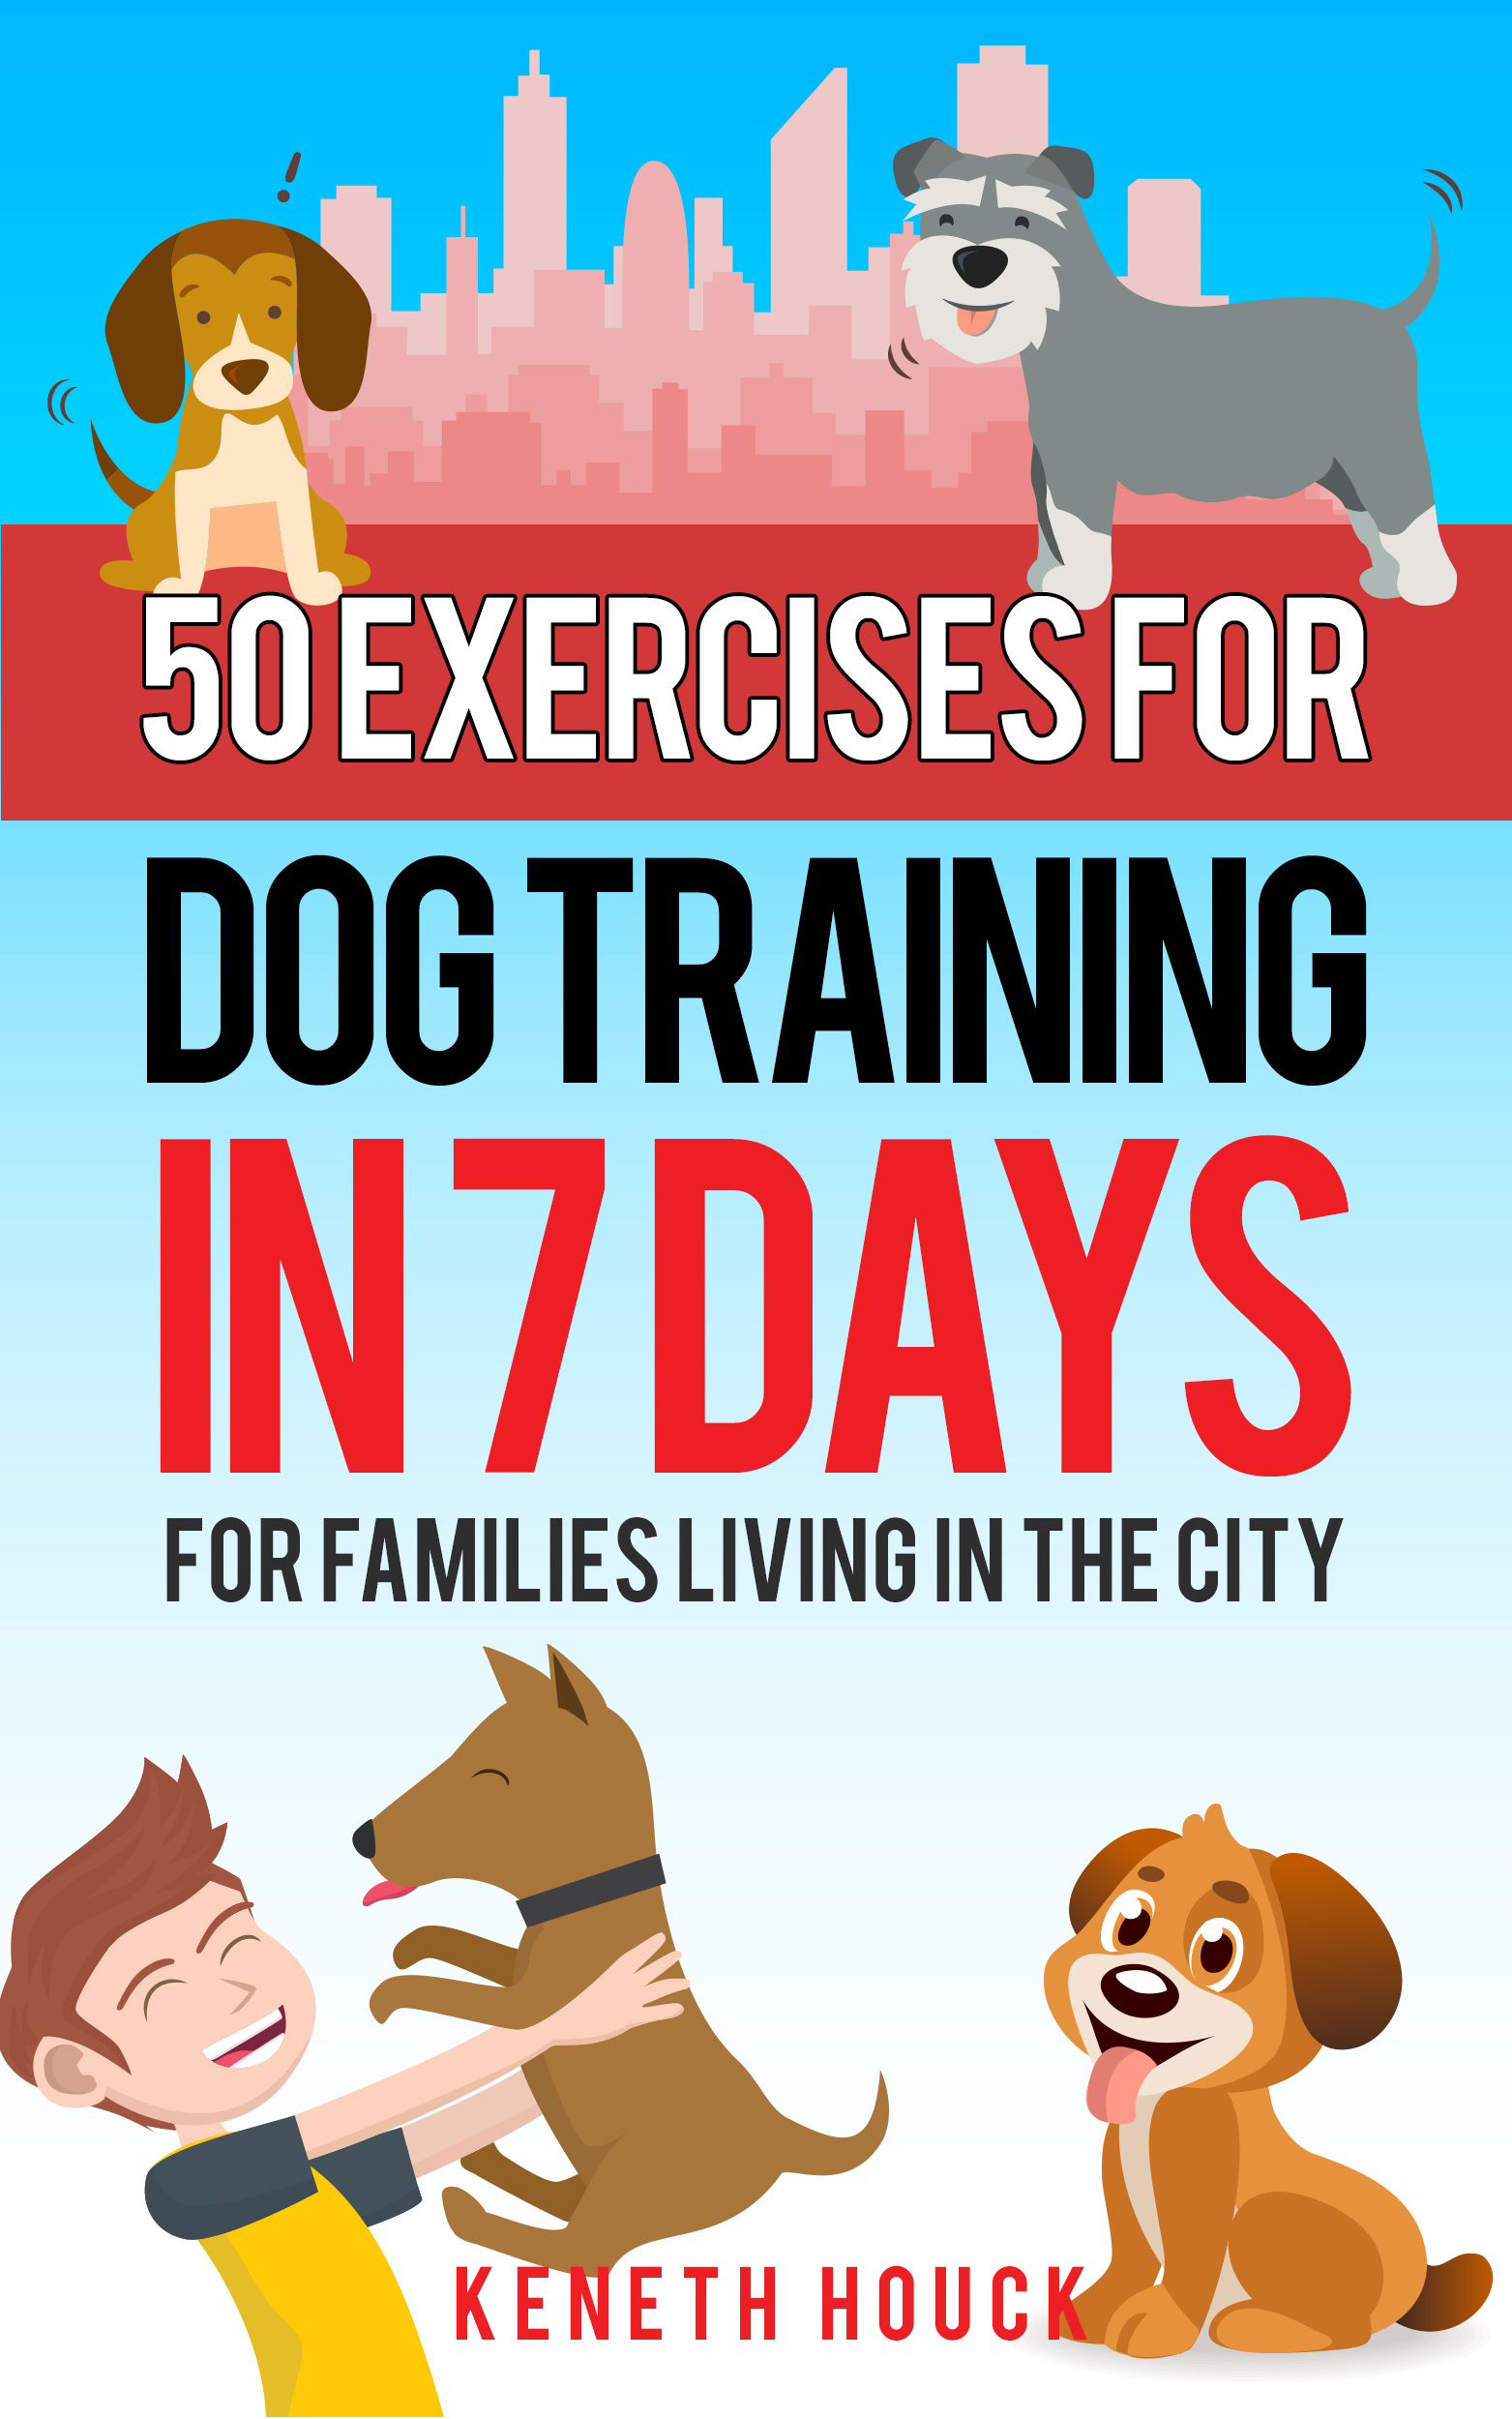 DOG TRAINING: 50 Exercises for Dog Training in 7 Days: for families living in the city (10 minutes or less)